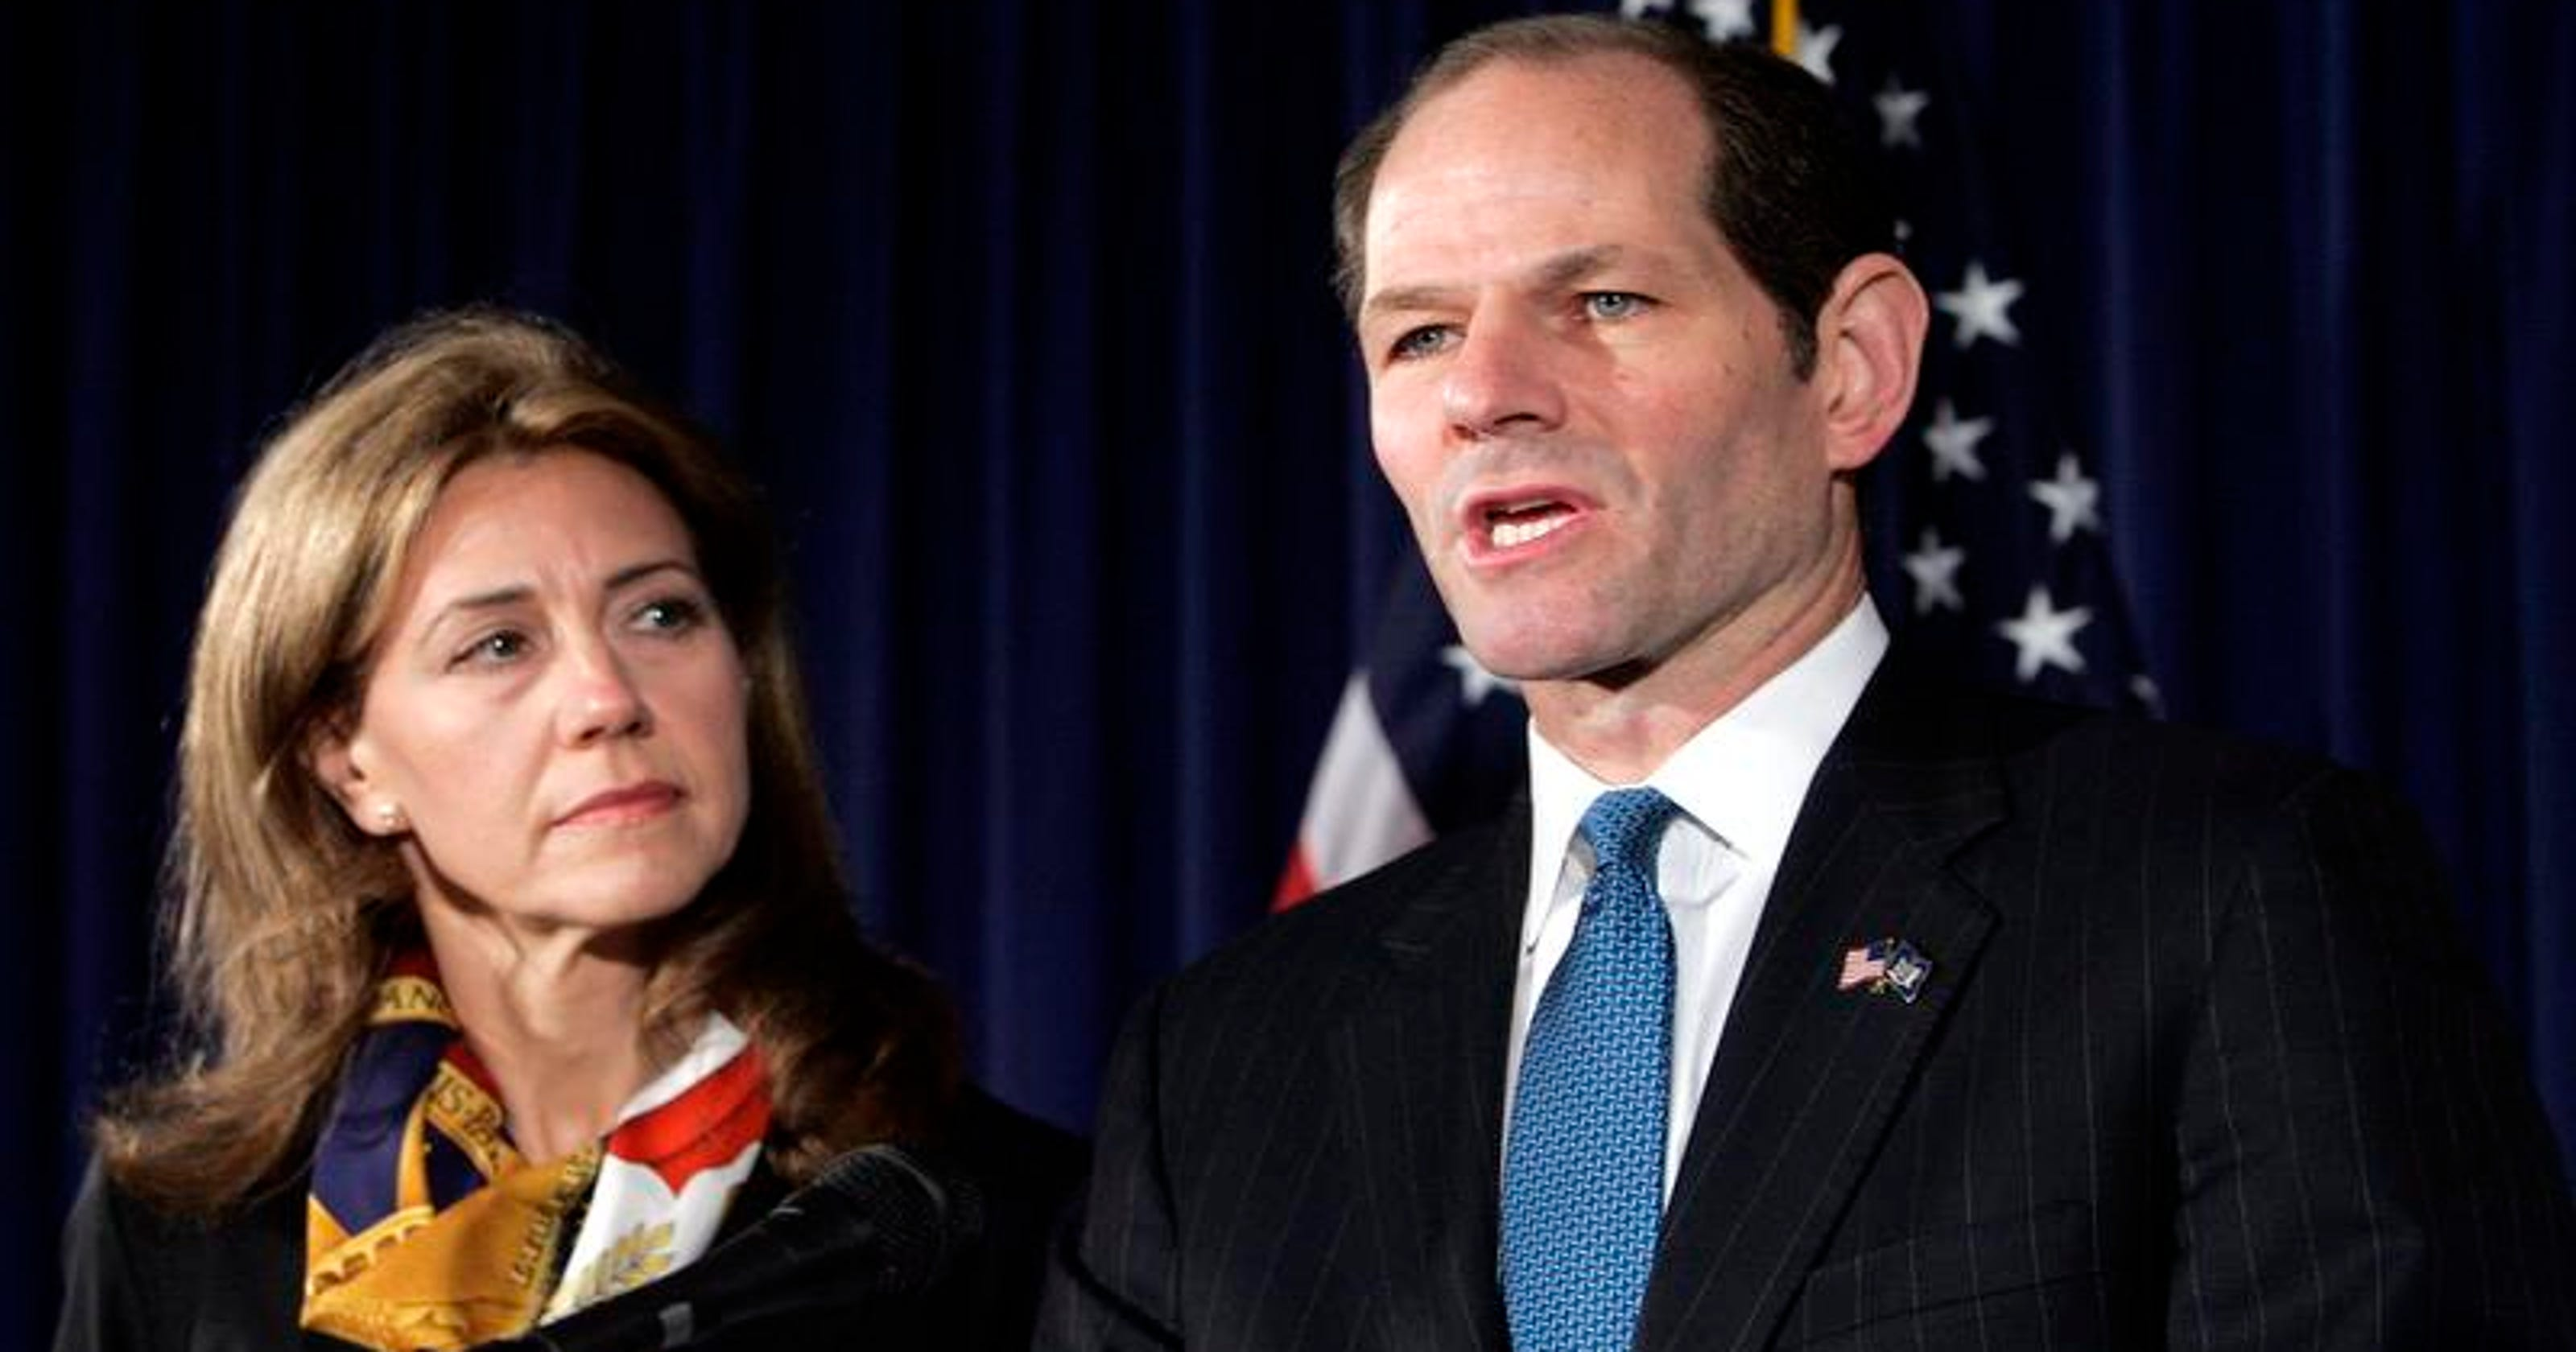 Behind the scenes: The chaos when Eliot Spitzer resigned 10 years ago